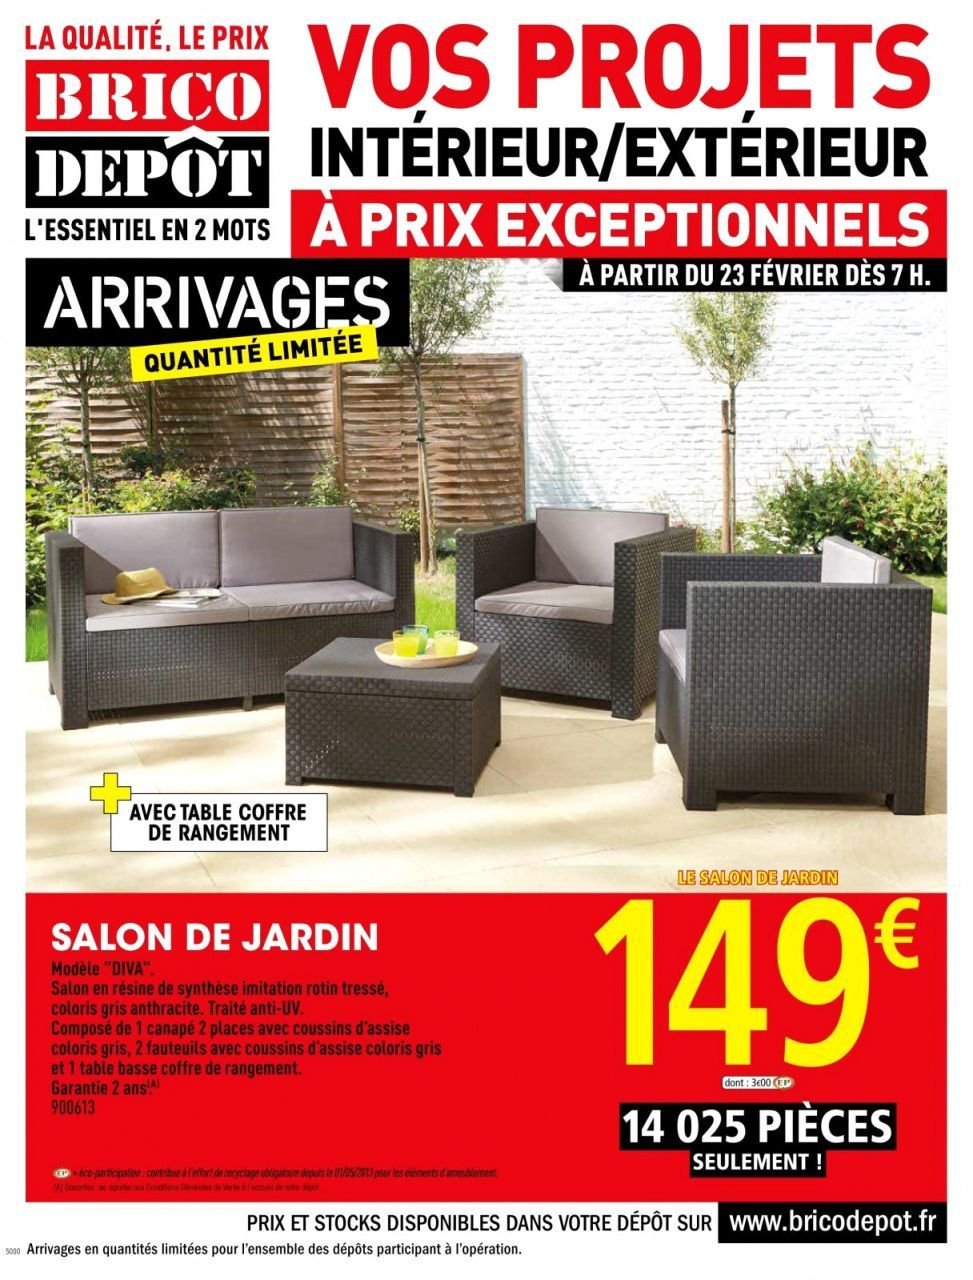 Salon De Jardin Allibert Brico Depot En 2020 Salon De Jardin Salon De Jardin Allibert Salon De Jardin Resine